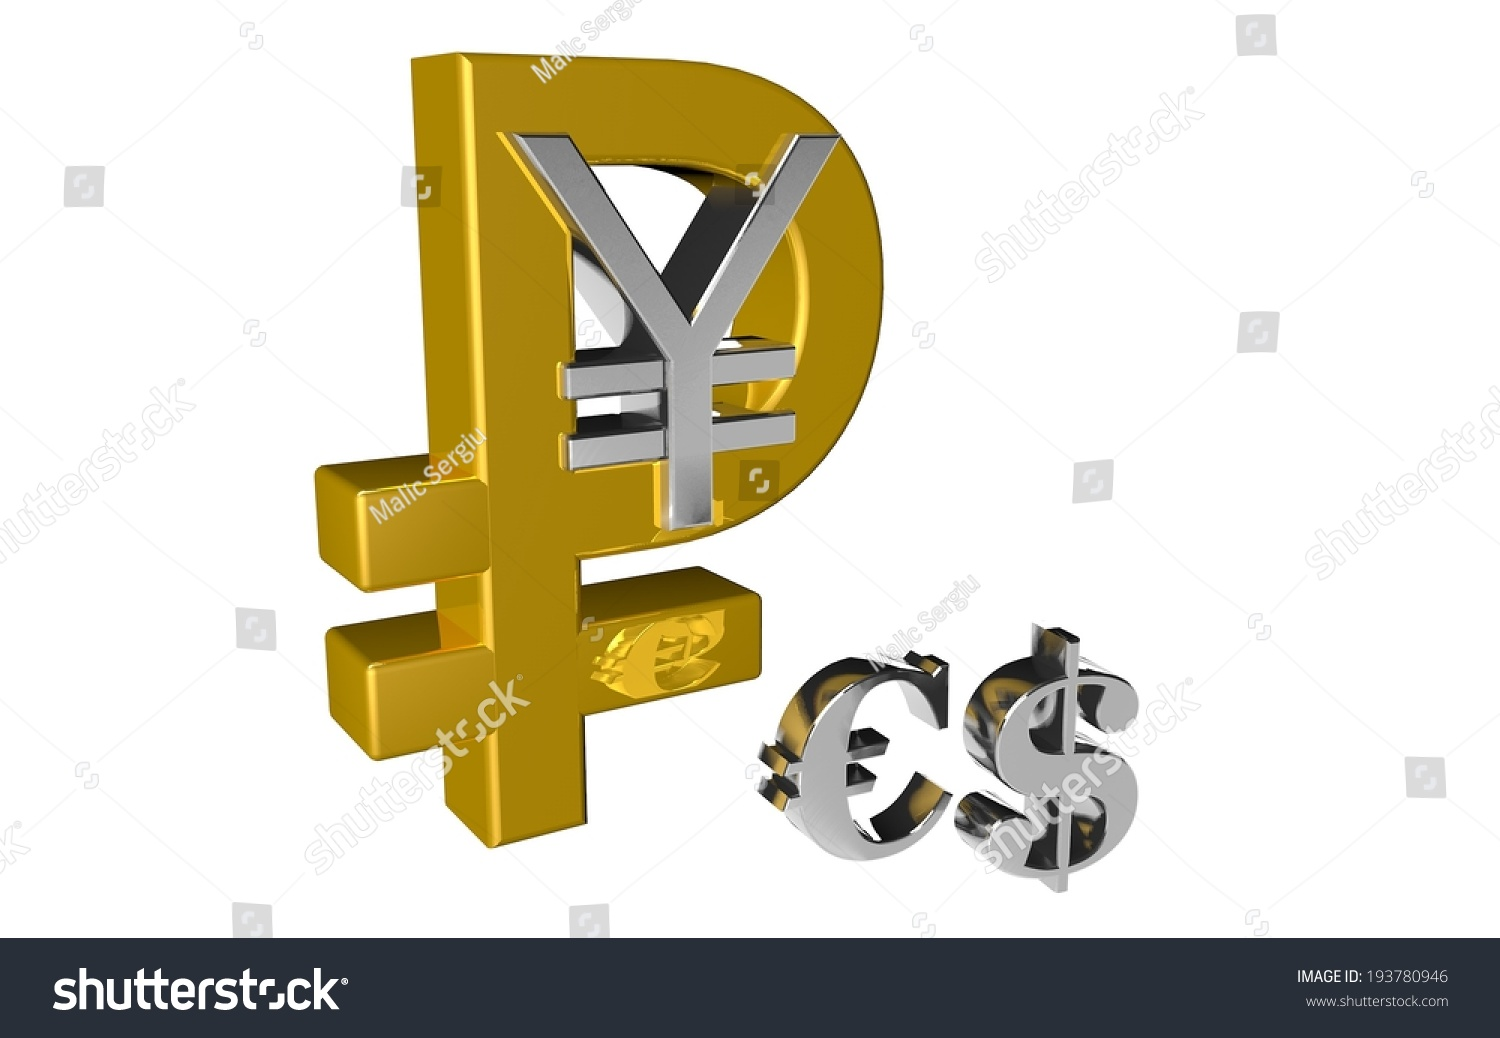 Russian ruble chinese yuan symbol country stock illustration russian ruble chinese yuan symbol the country and the money new currency financial gold silver biocorpaavc